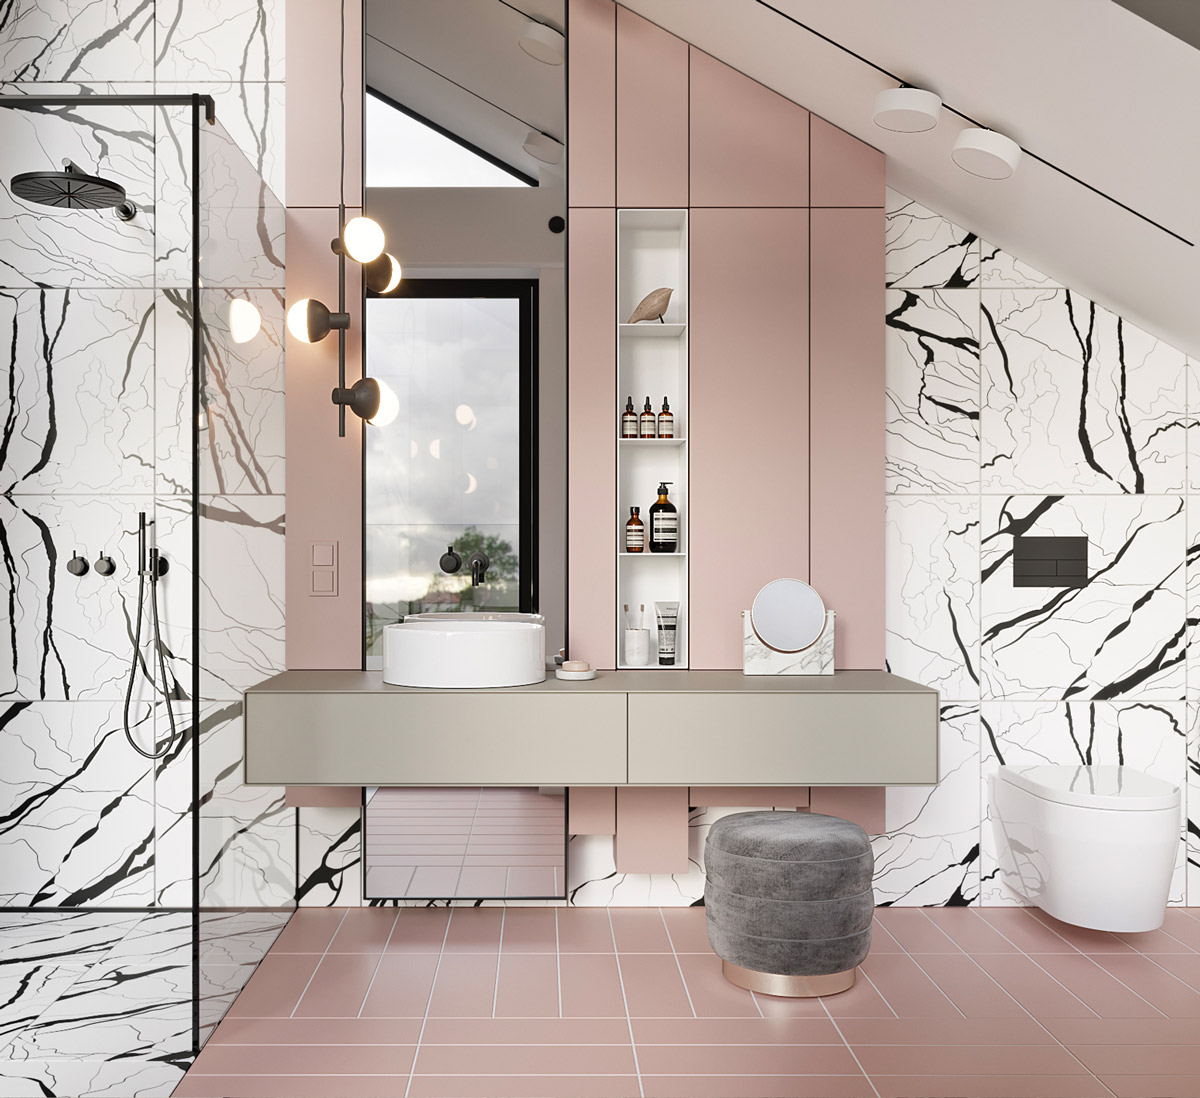 40 Modern Bathroom Vanities That Overflow With Style images 5